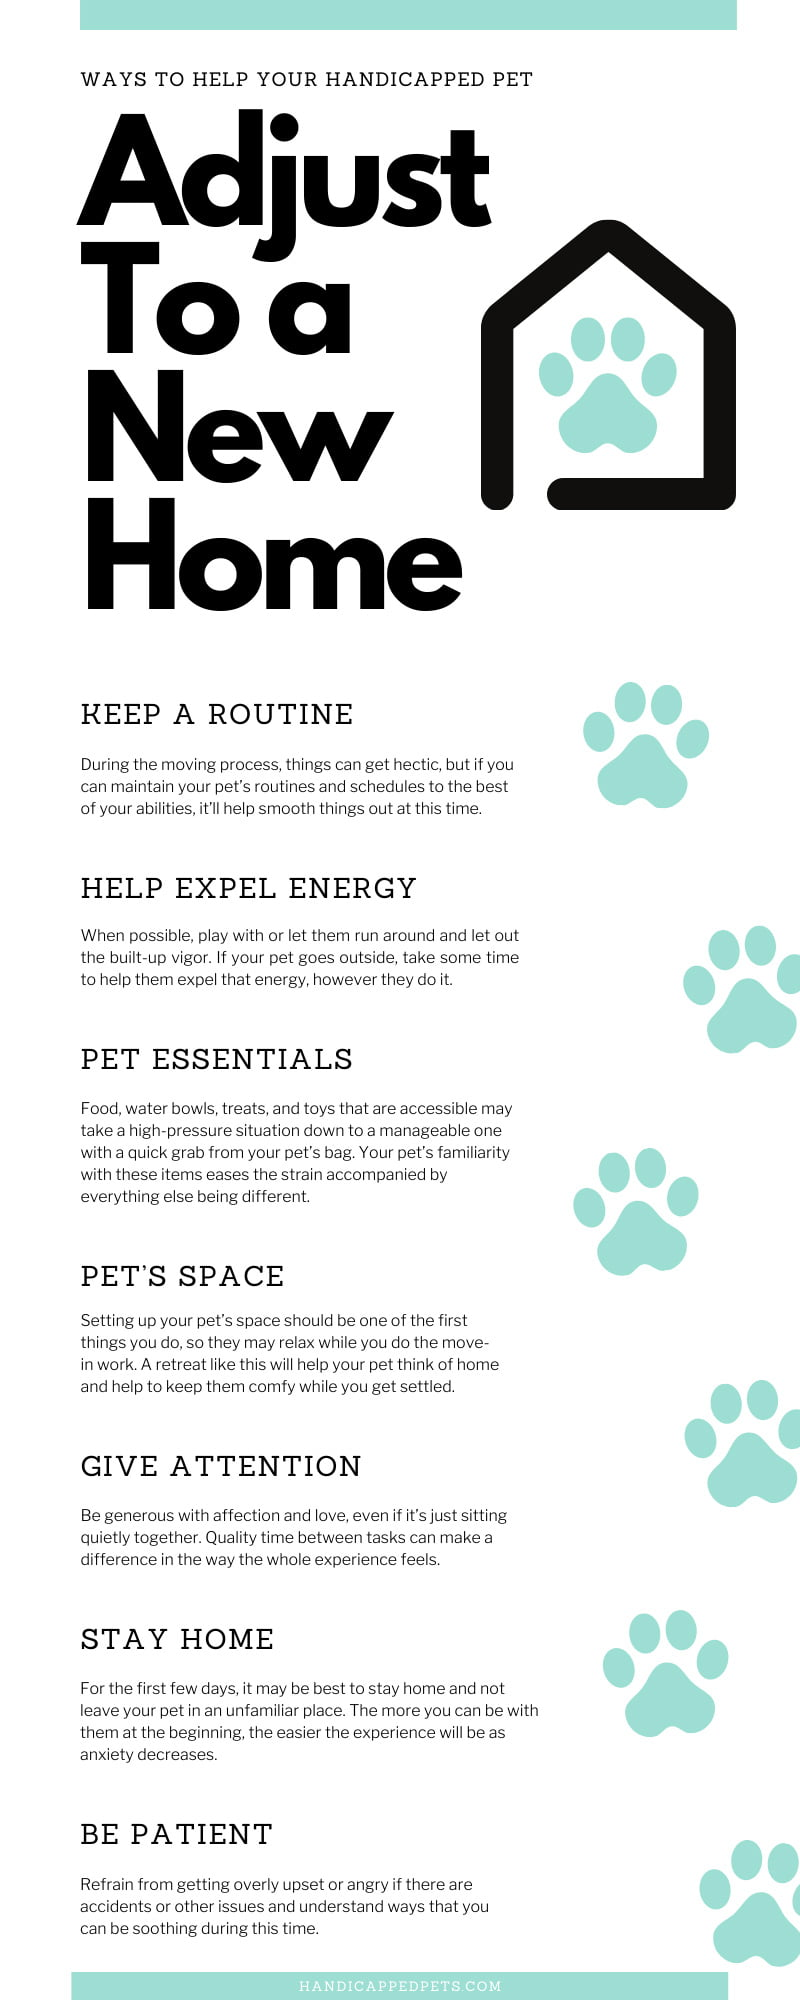 Ways To Help Your Handicapped Pet Adjust To a New Home